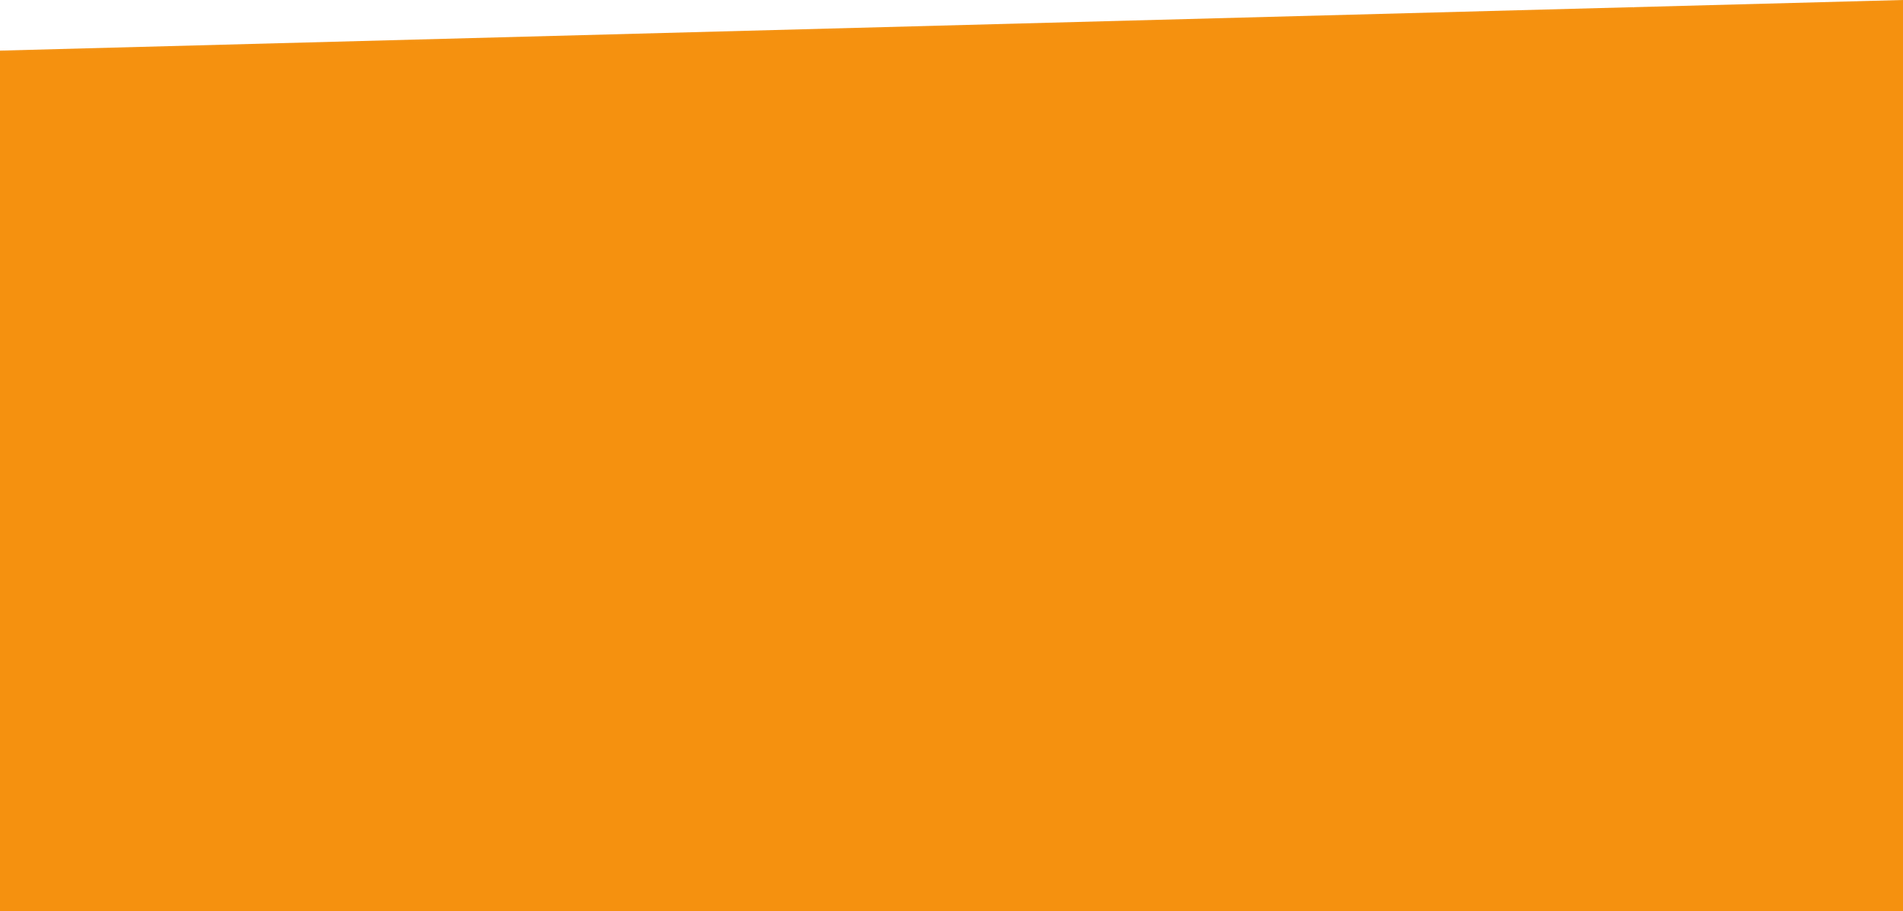 Banner #618C85.png